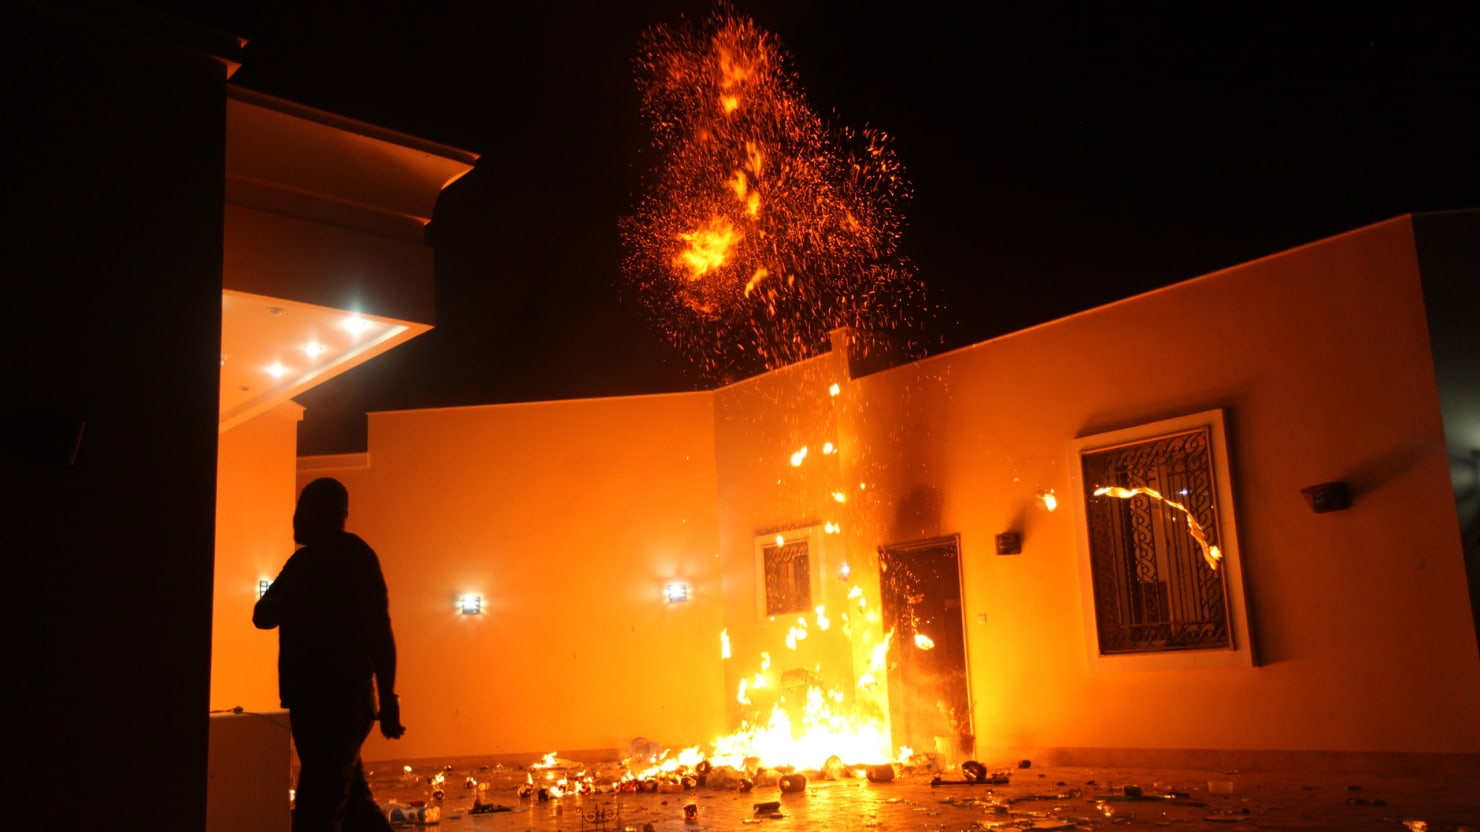 State Department: Benghazi Not Planned By 'Core Al Qaeda'